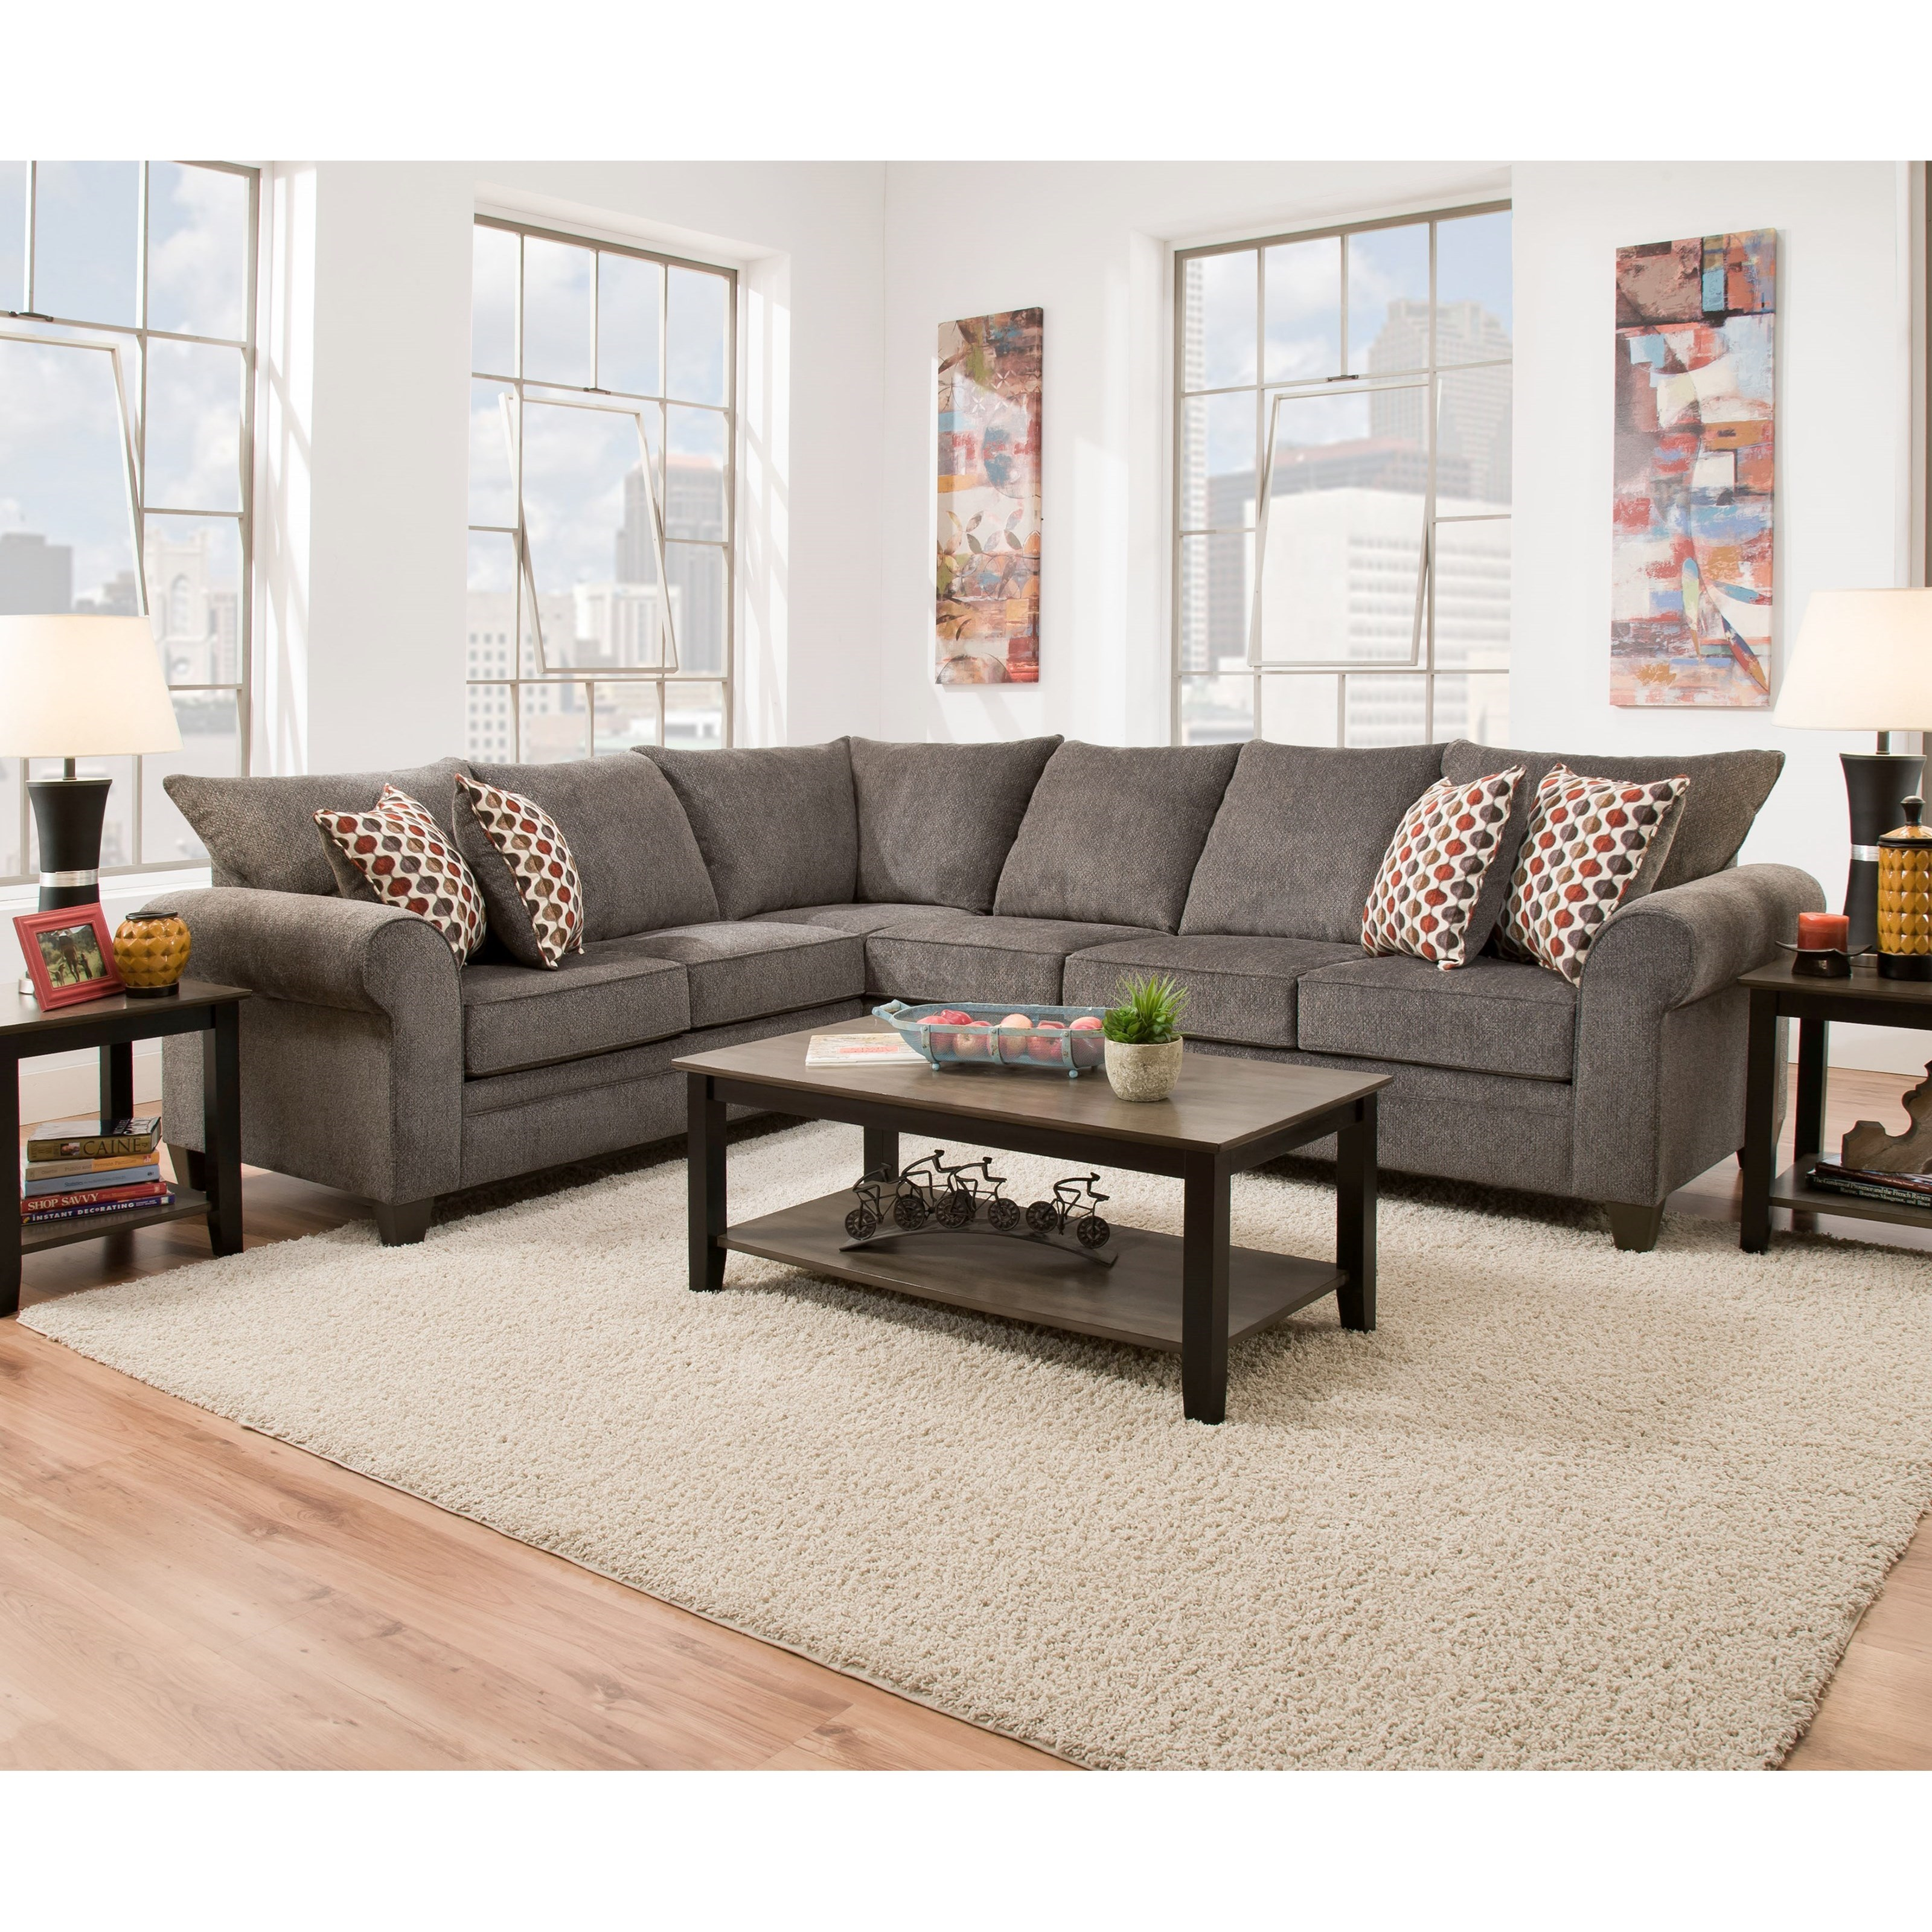 United Furniture Industries 1647 5-Seat Sectional with Sleeper Sofa - Item Number: 1647RAFSSofa+LAFBumpSofa-Pewte